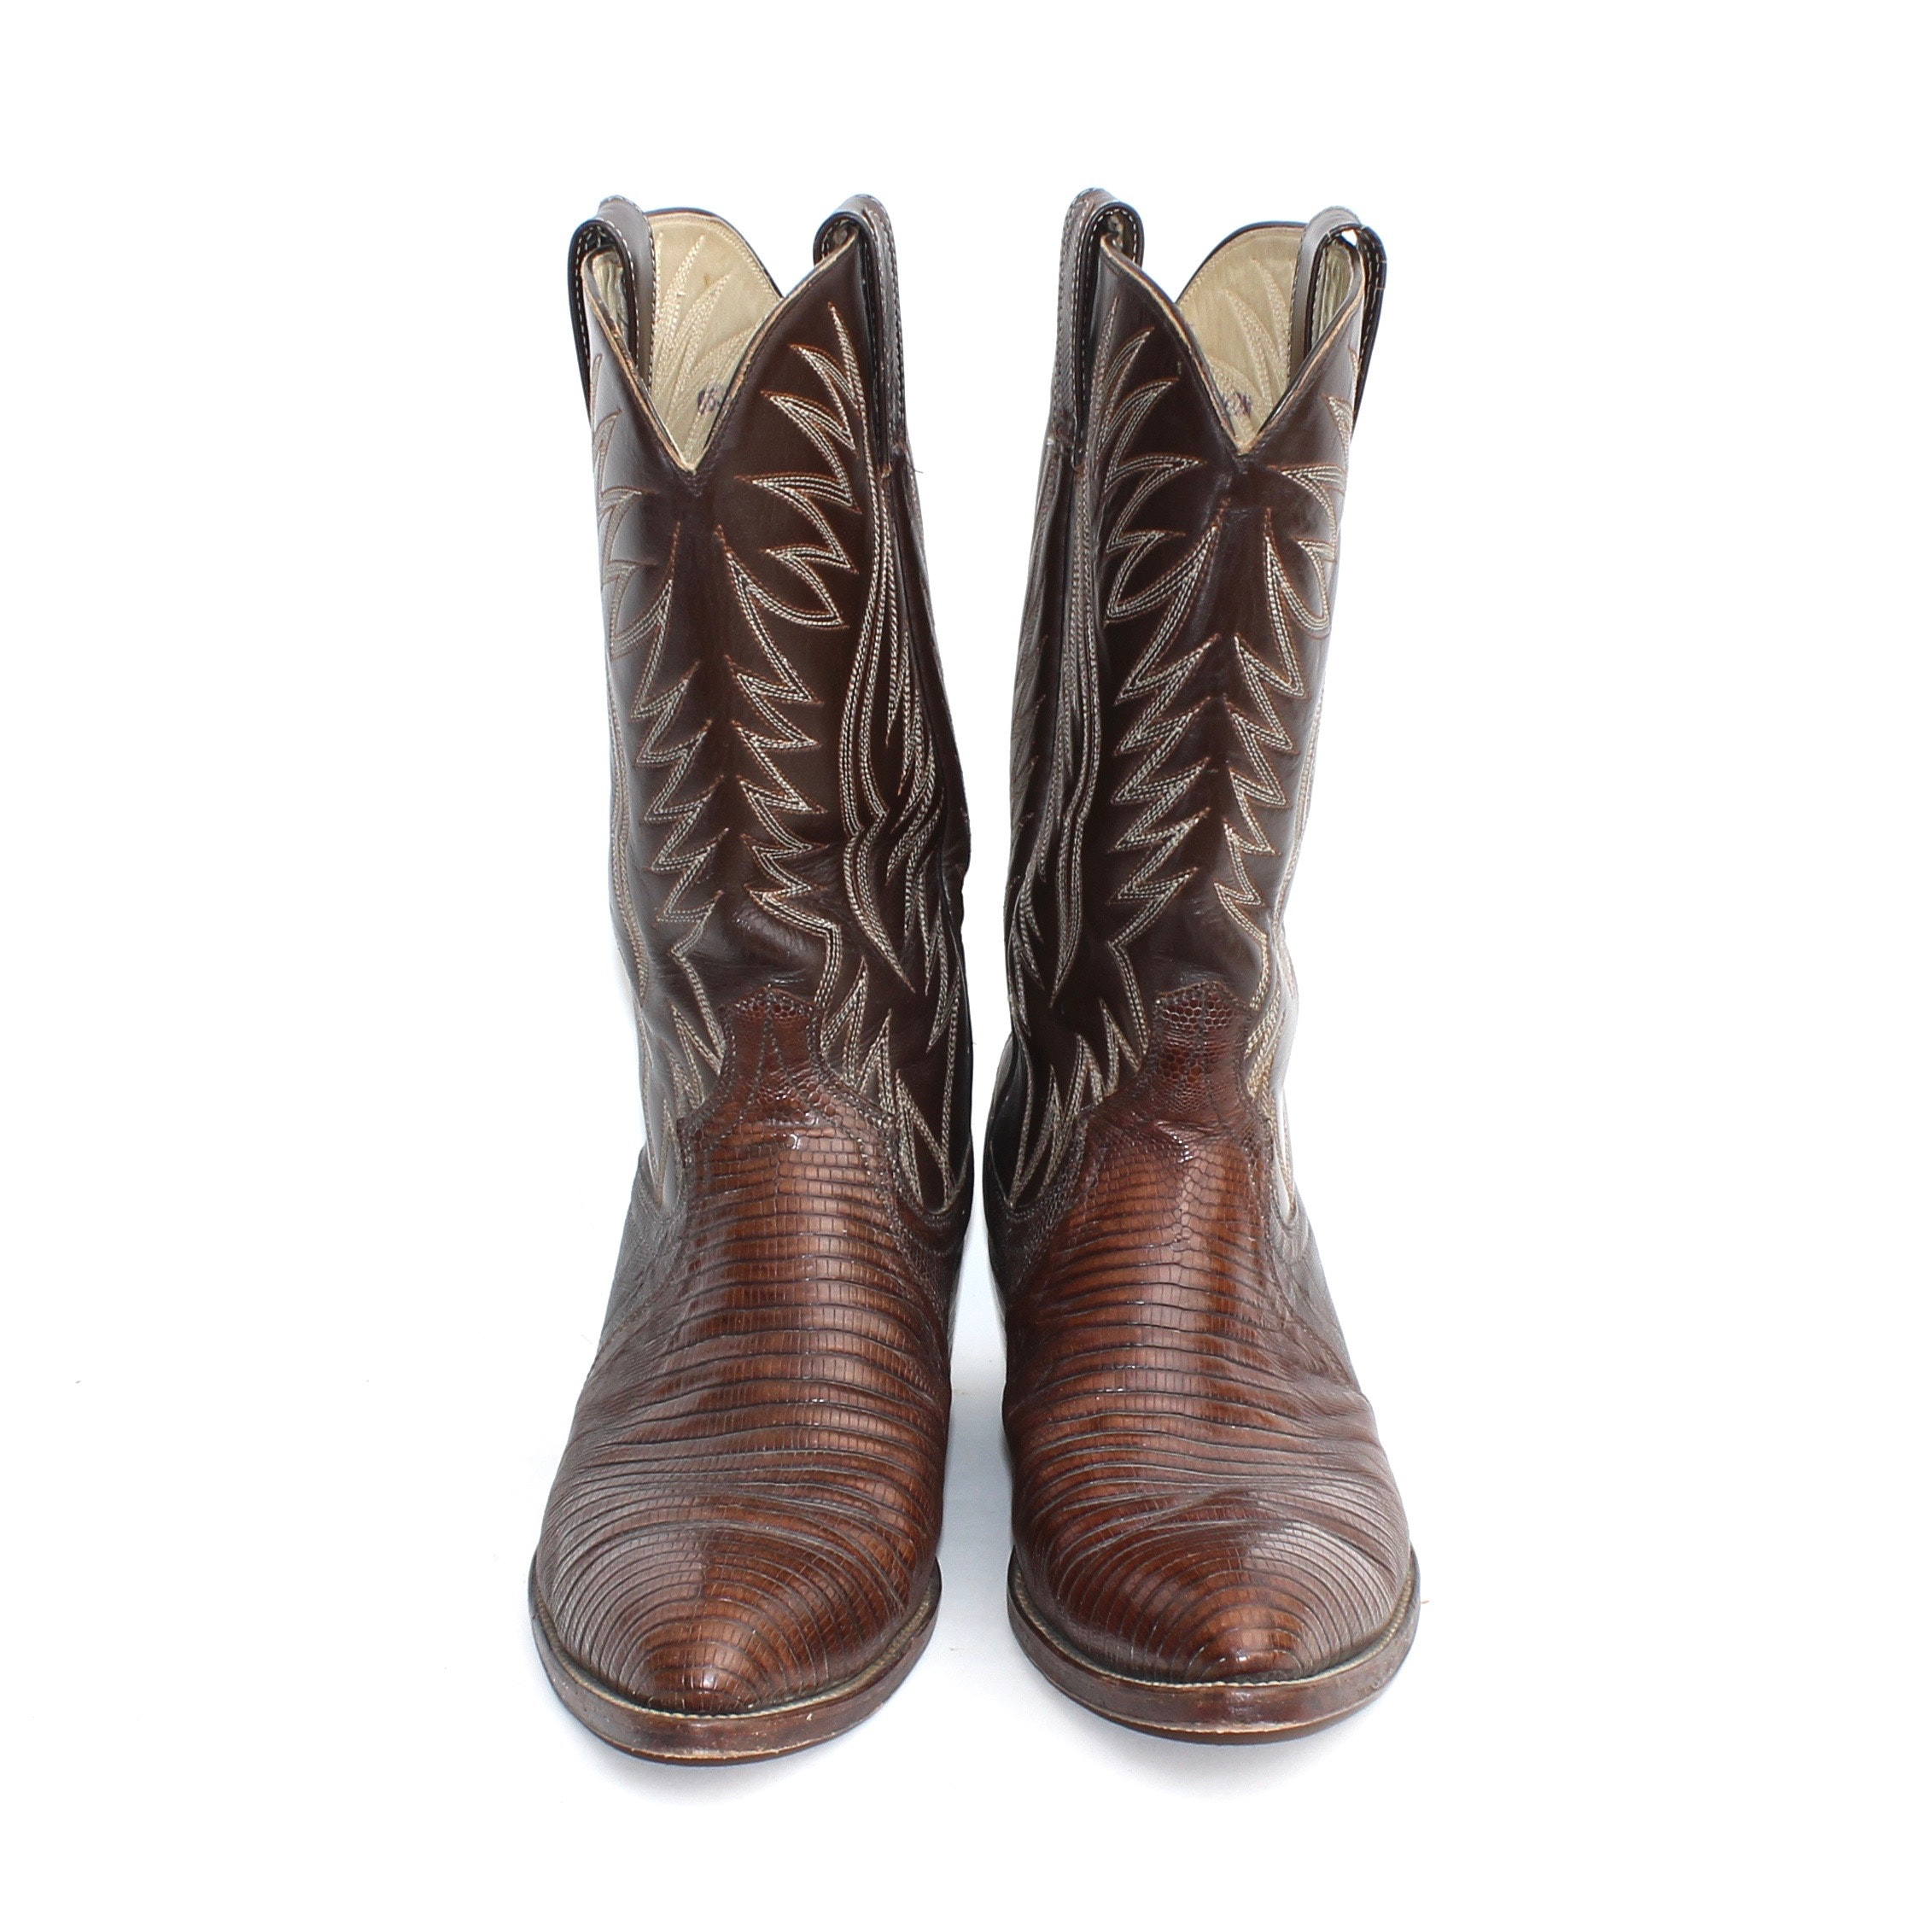 Men's Leather Cowboy Boots Made in Mexico